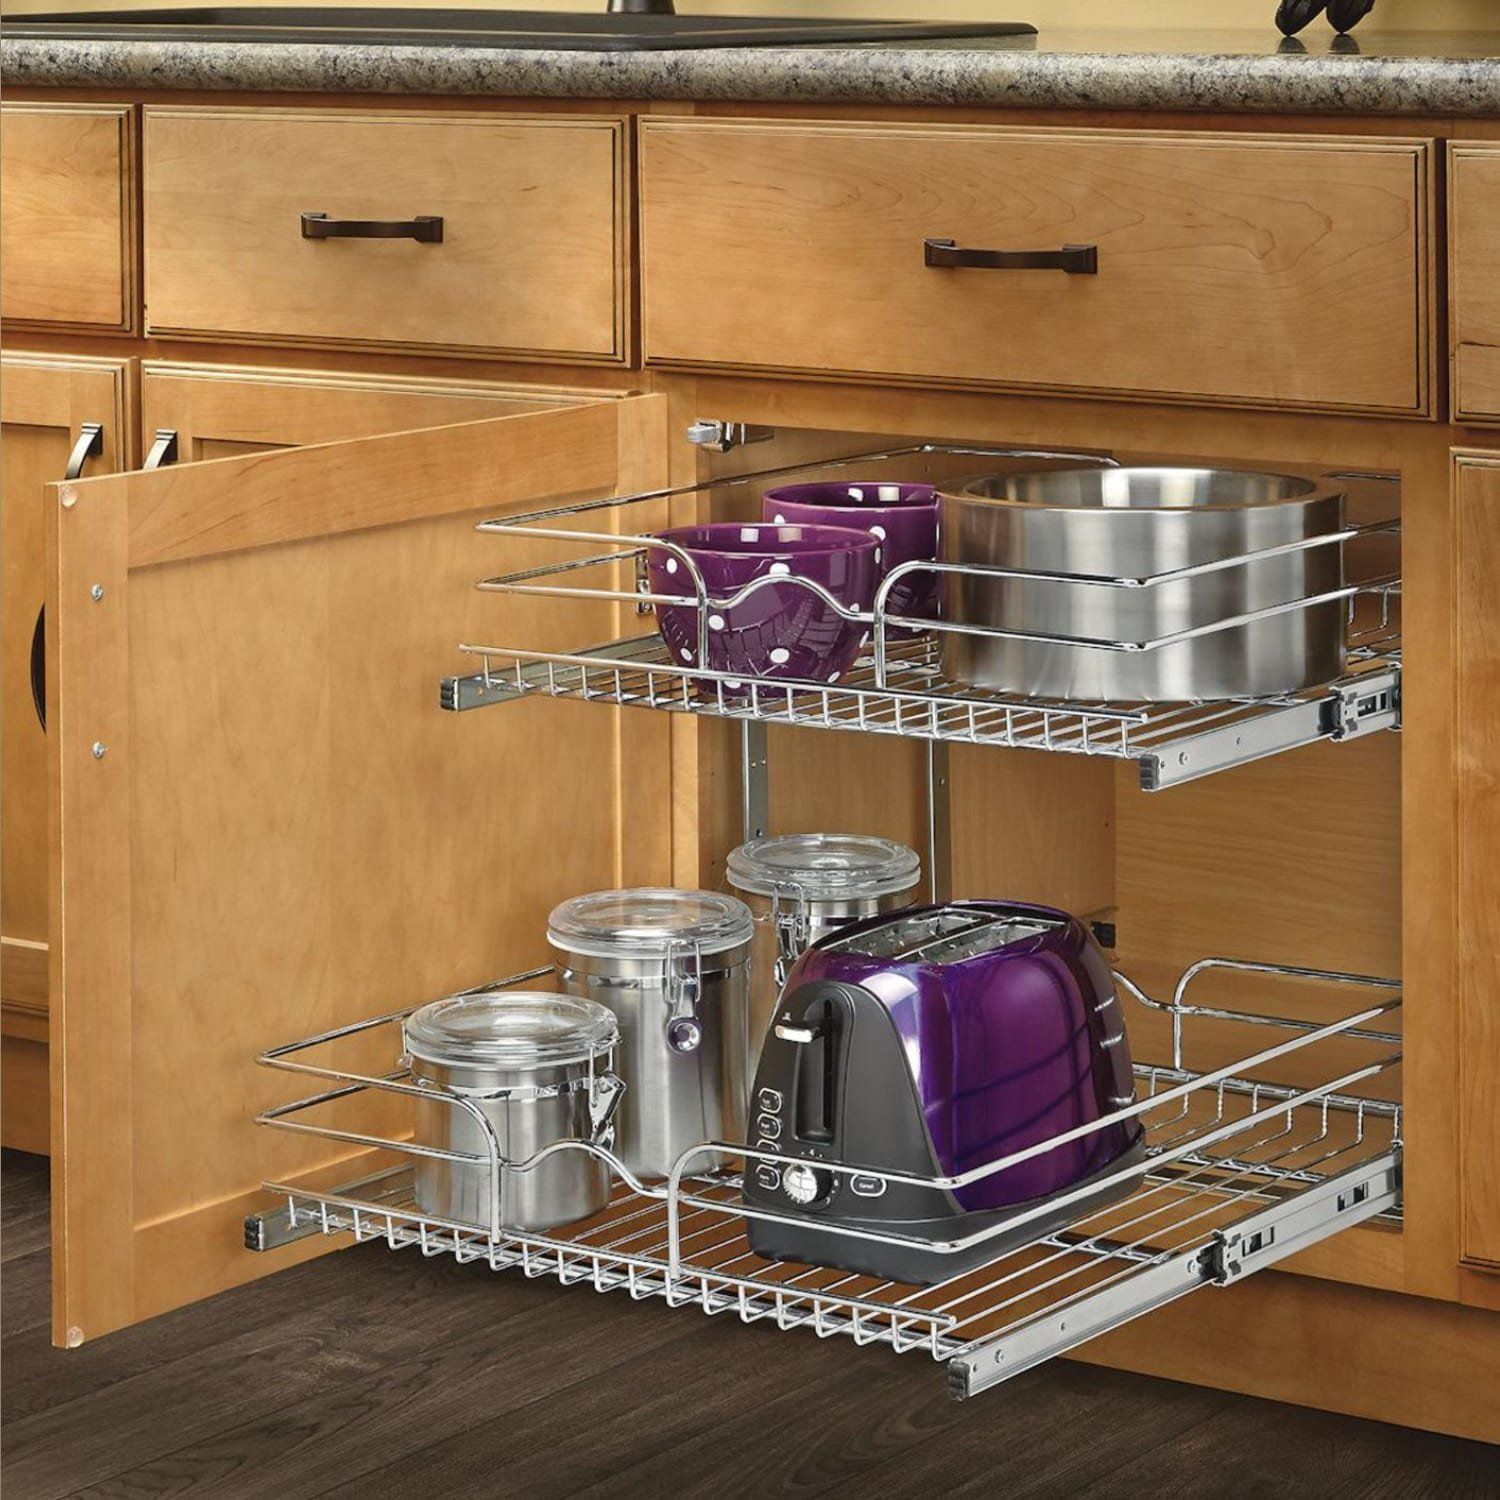 cabinet organizer h p pull basket base chrome shelf out tier x rev d a kitchen wire w in two organizers cookware cr